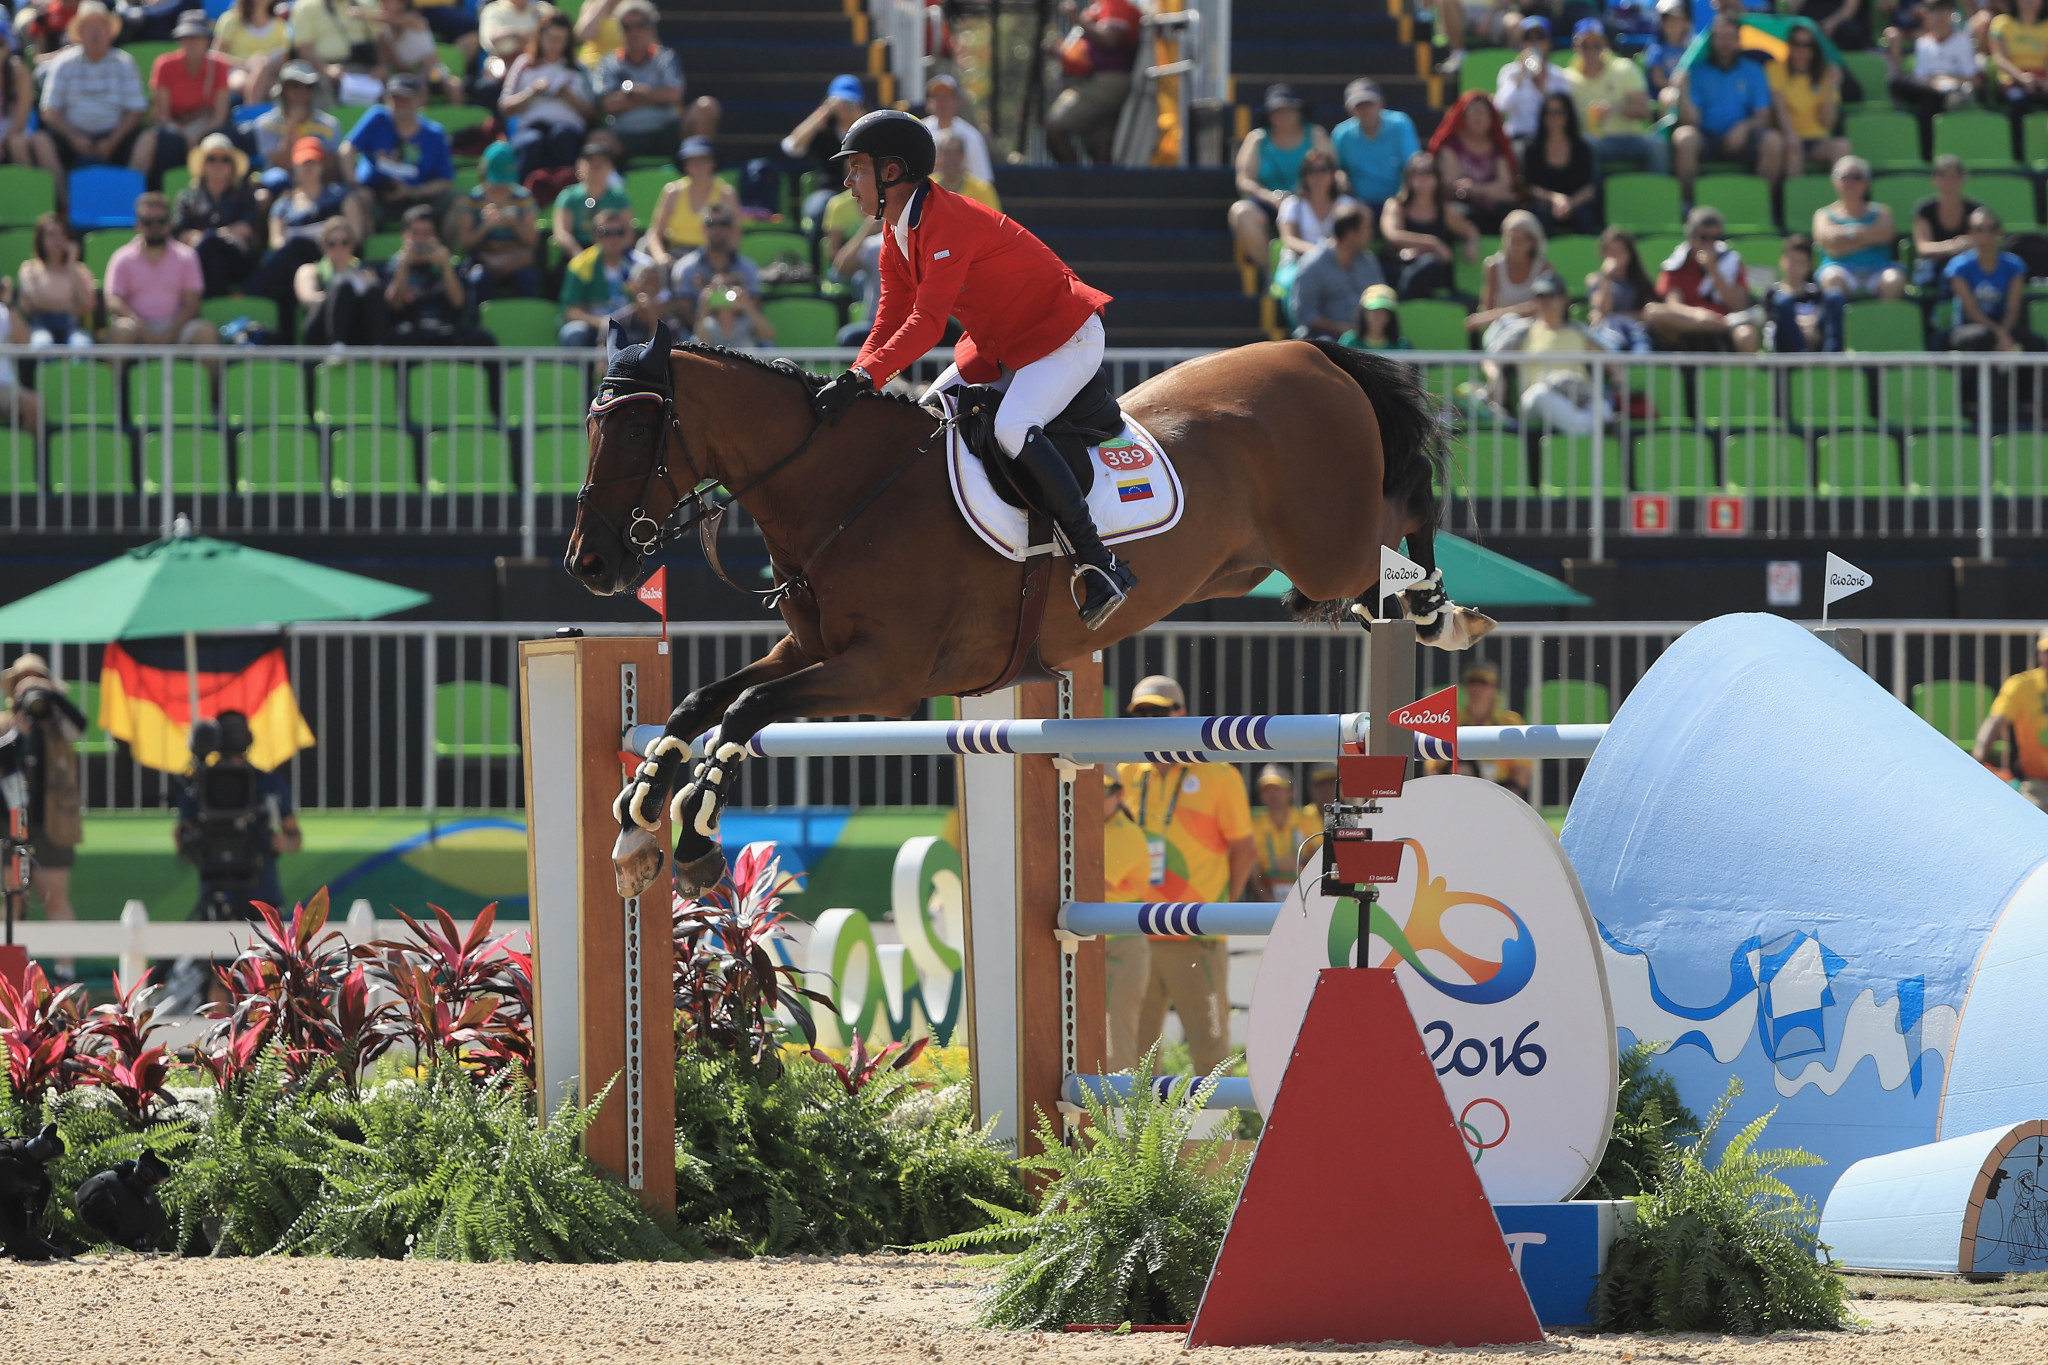 Like other sports, equestrian faces the challenge of expanding its international reach while keeping within Olympic quotas ©Getty Images